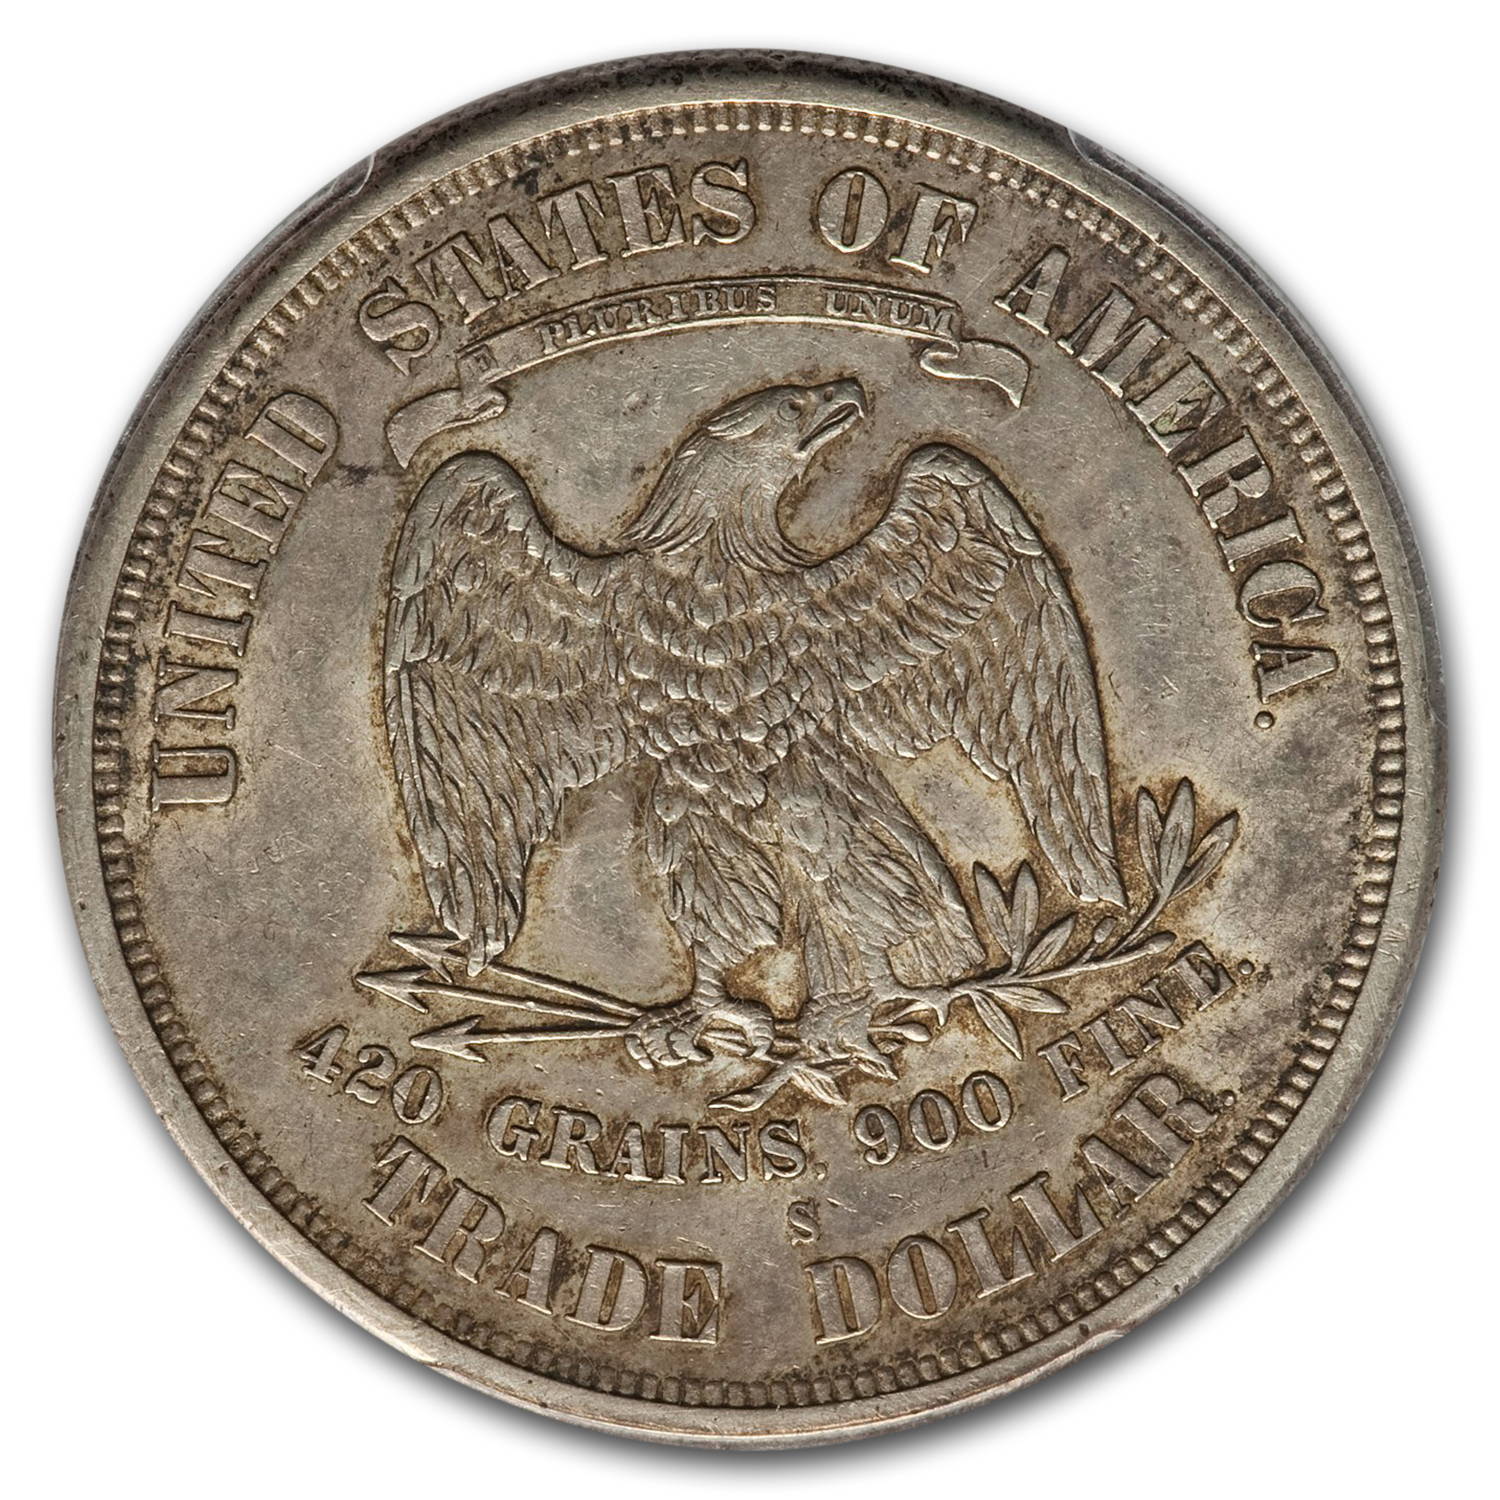 1875-S Trade Dollar - Almost Uncirculated-55 PCGS